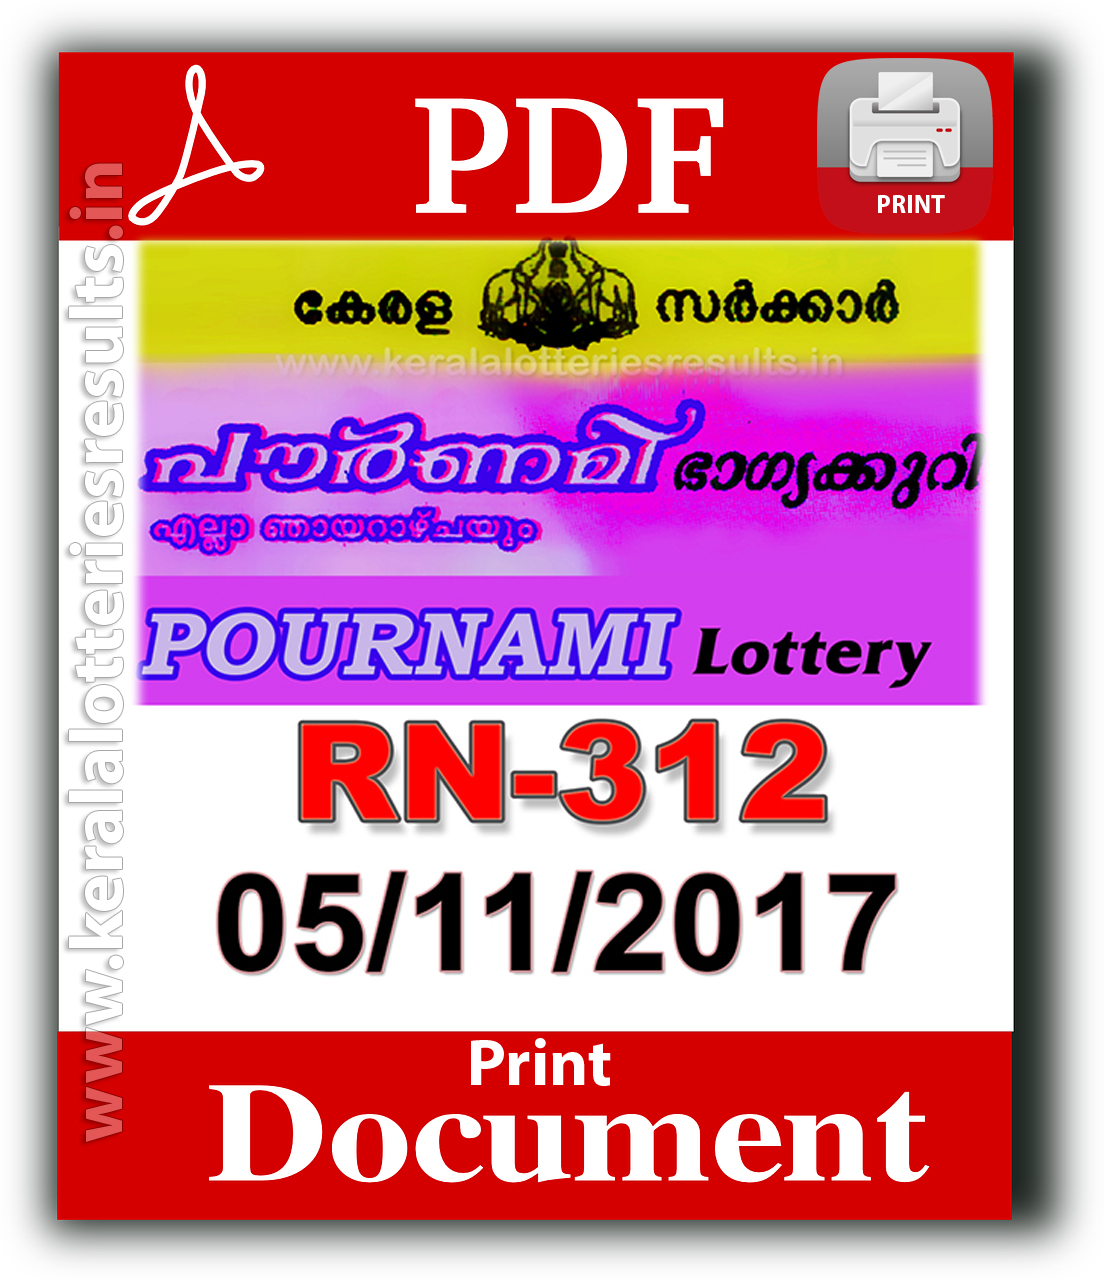 05.11.2017: Pournami RN 312 Lottery Results Official PDF